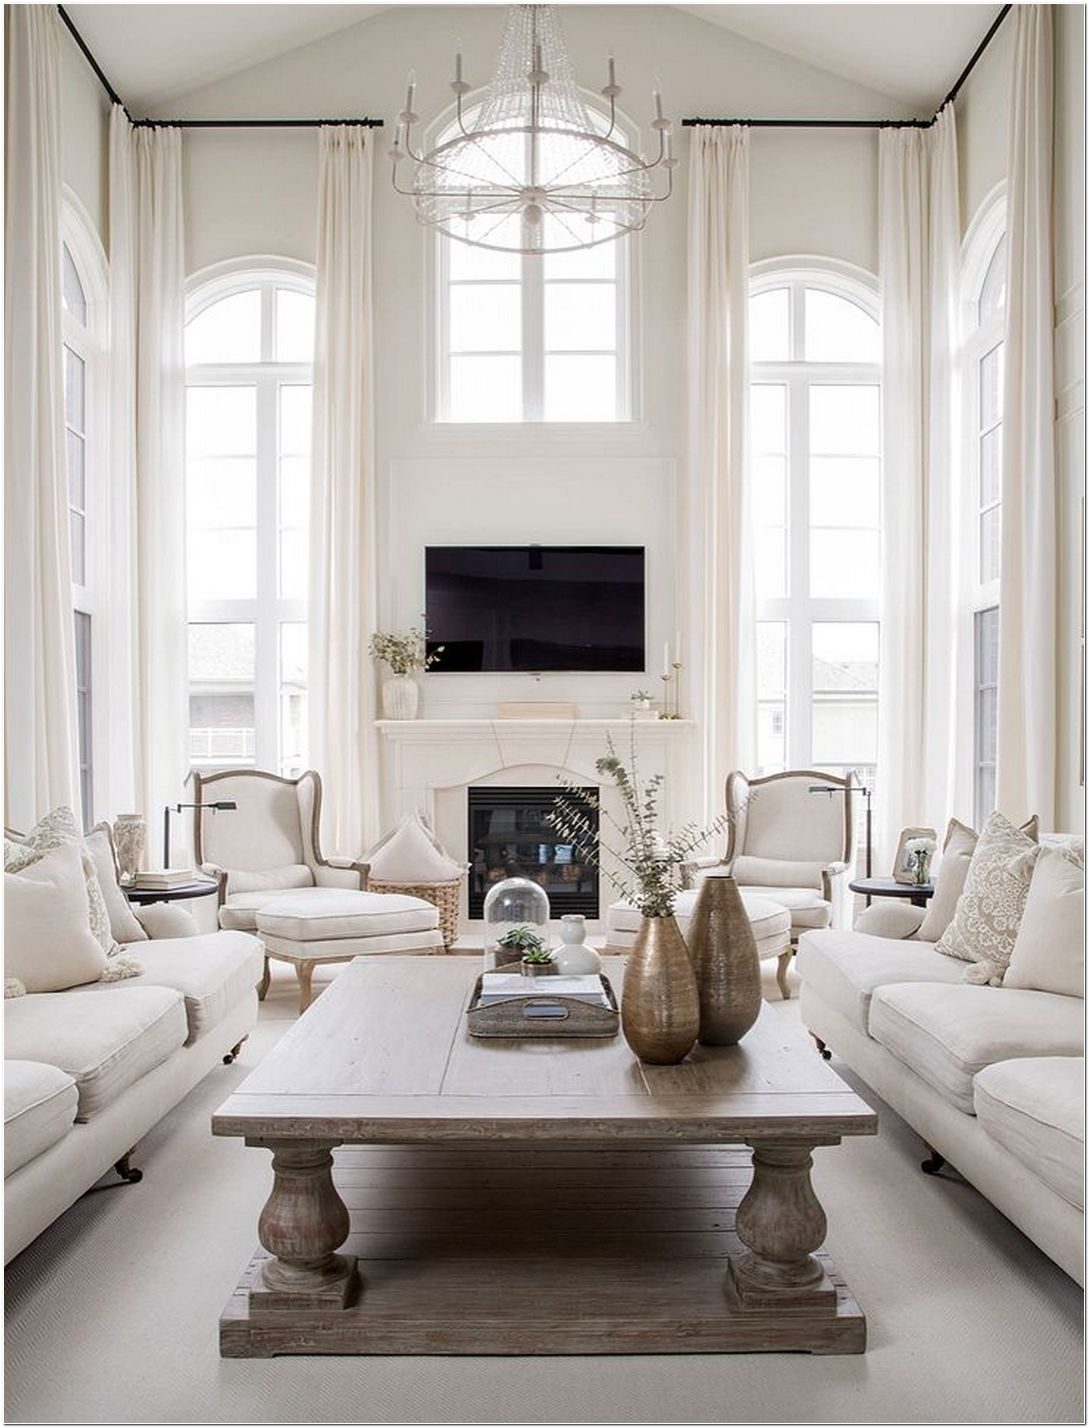 Key Features of Luxury Living Room Interior